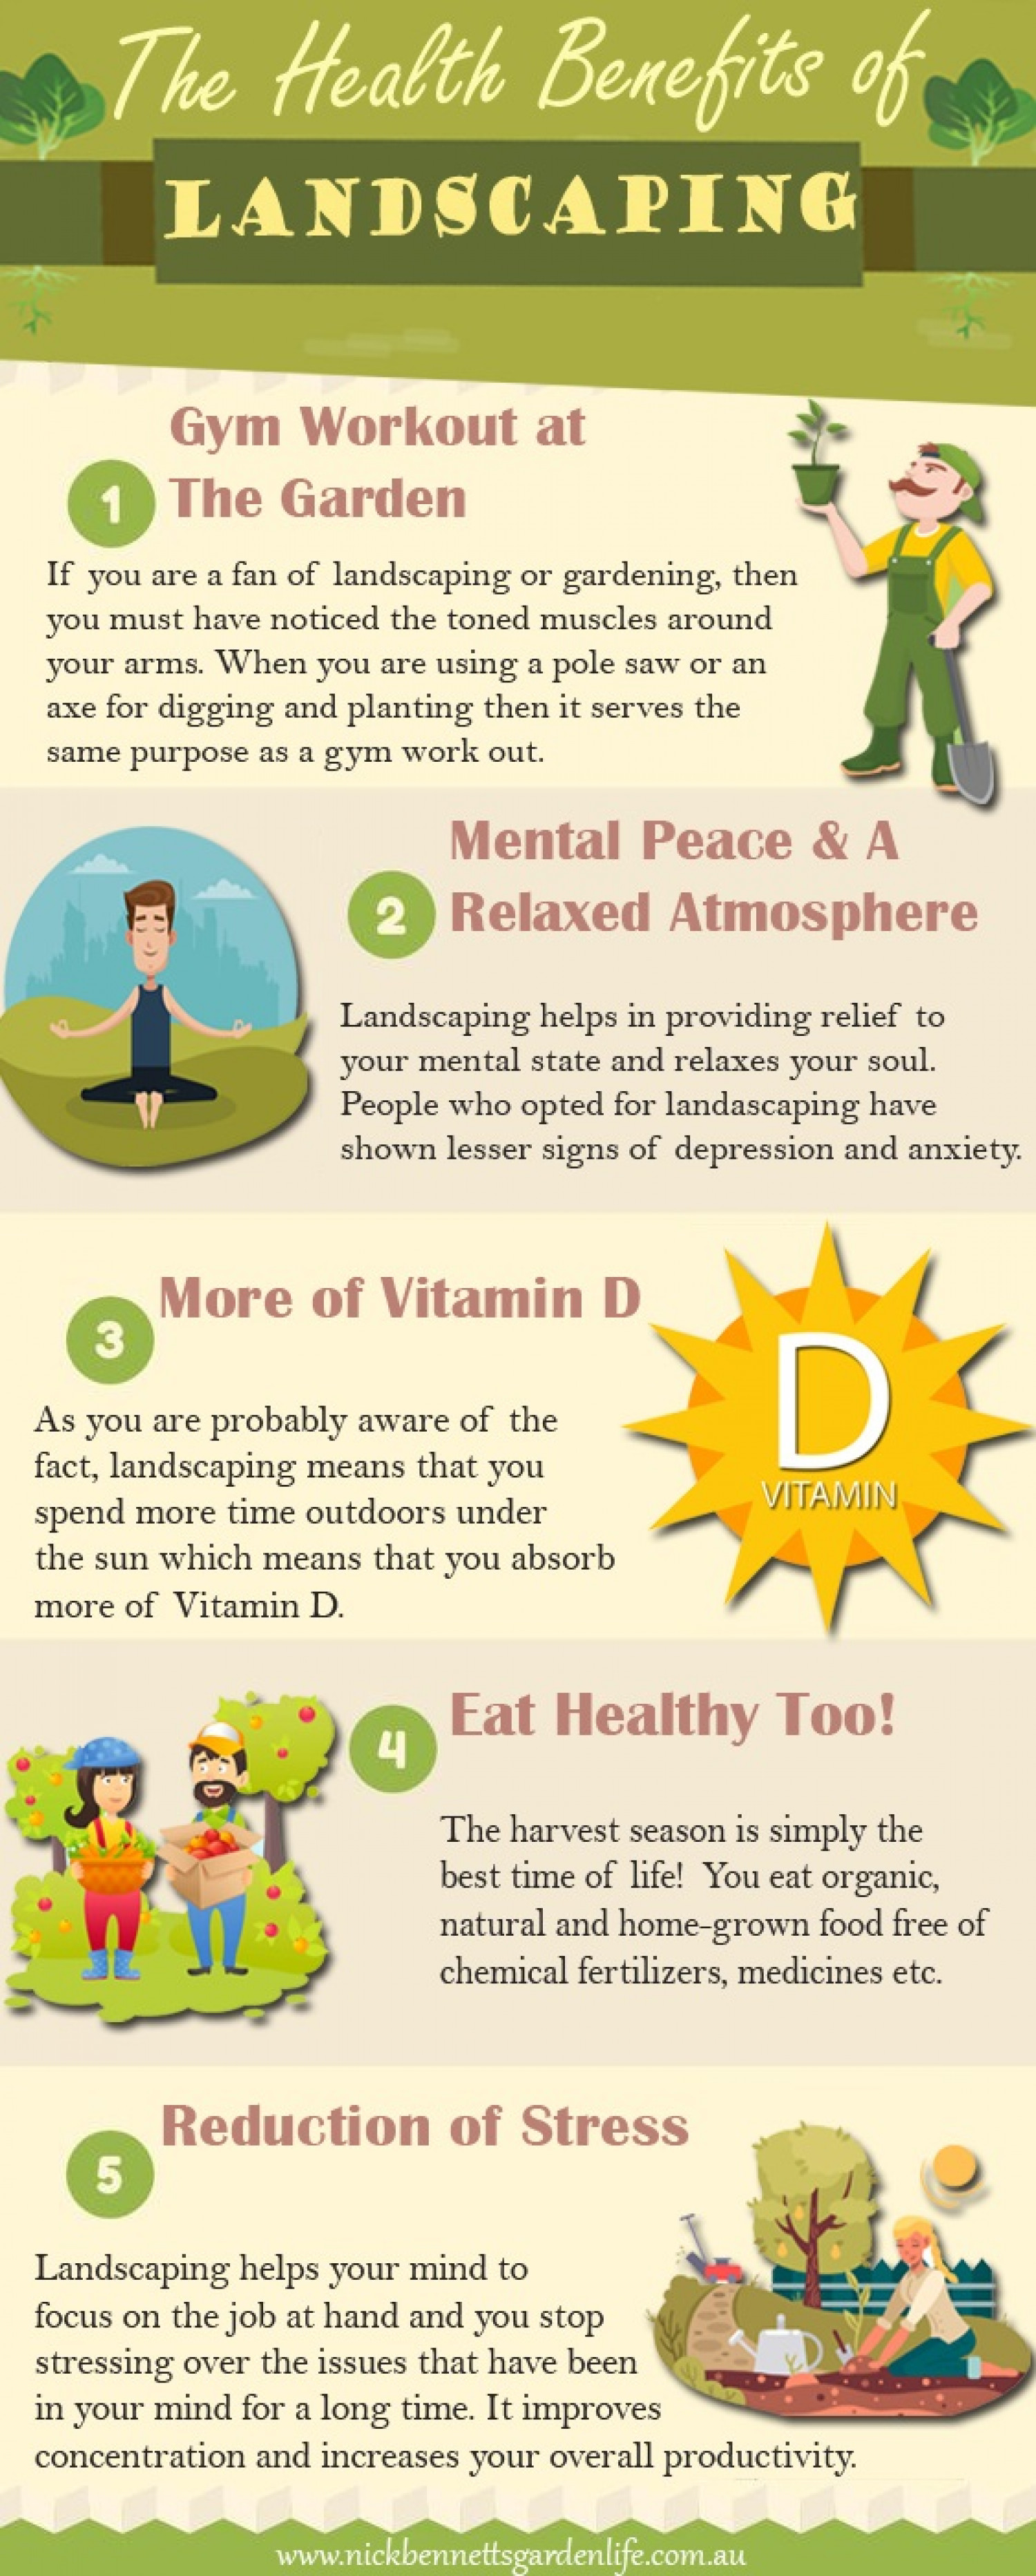 The Health Benefits of Landscaping Infographic